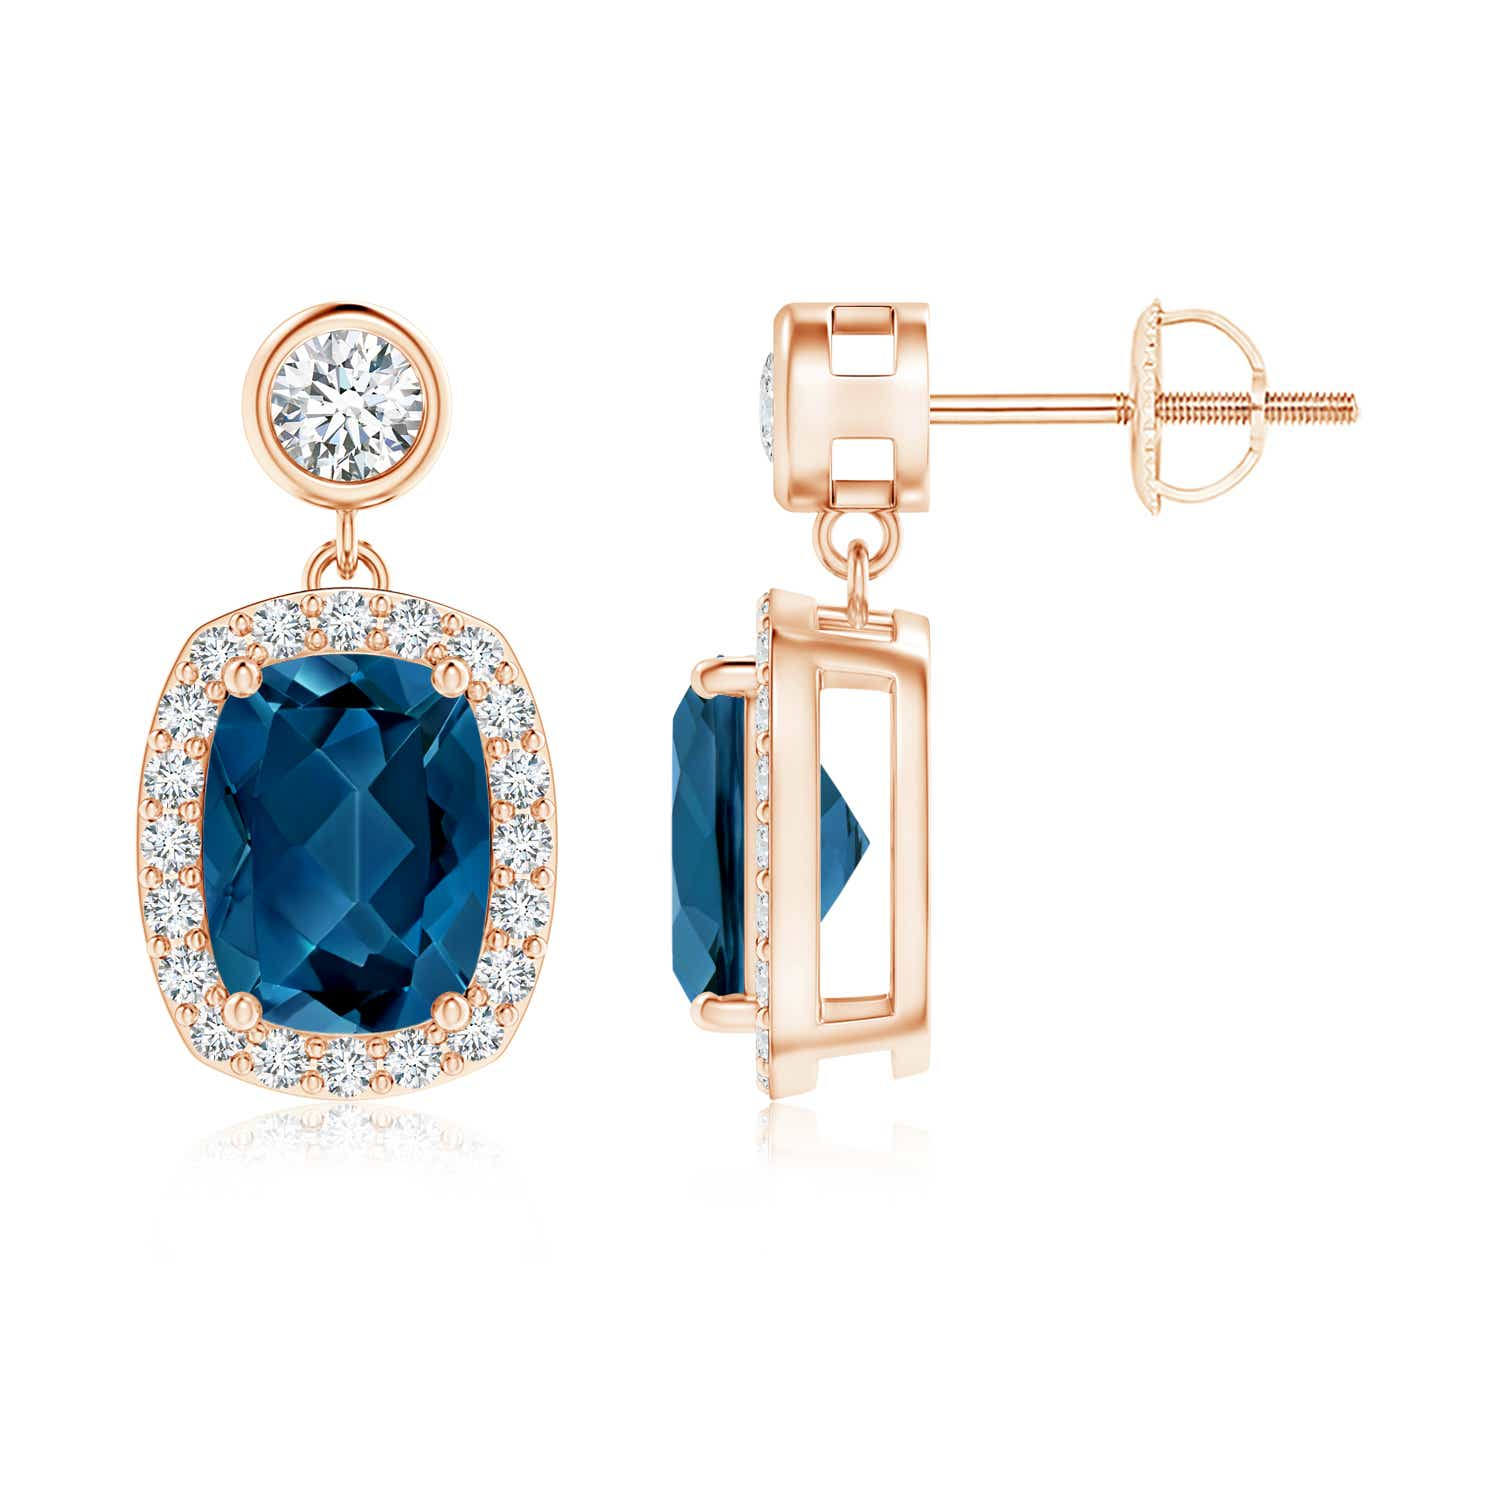 Cushion London Blue Topaz Dangle Earrings with Diamond Halo - Angara.com